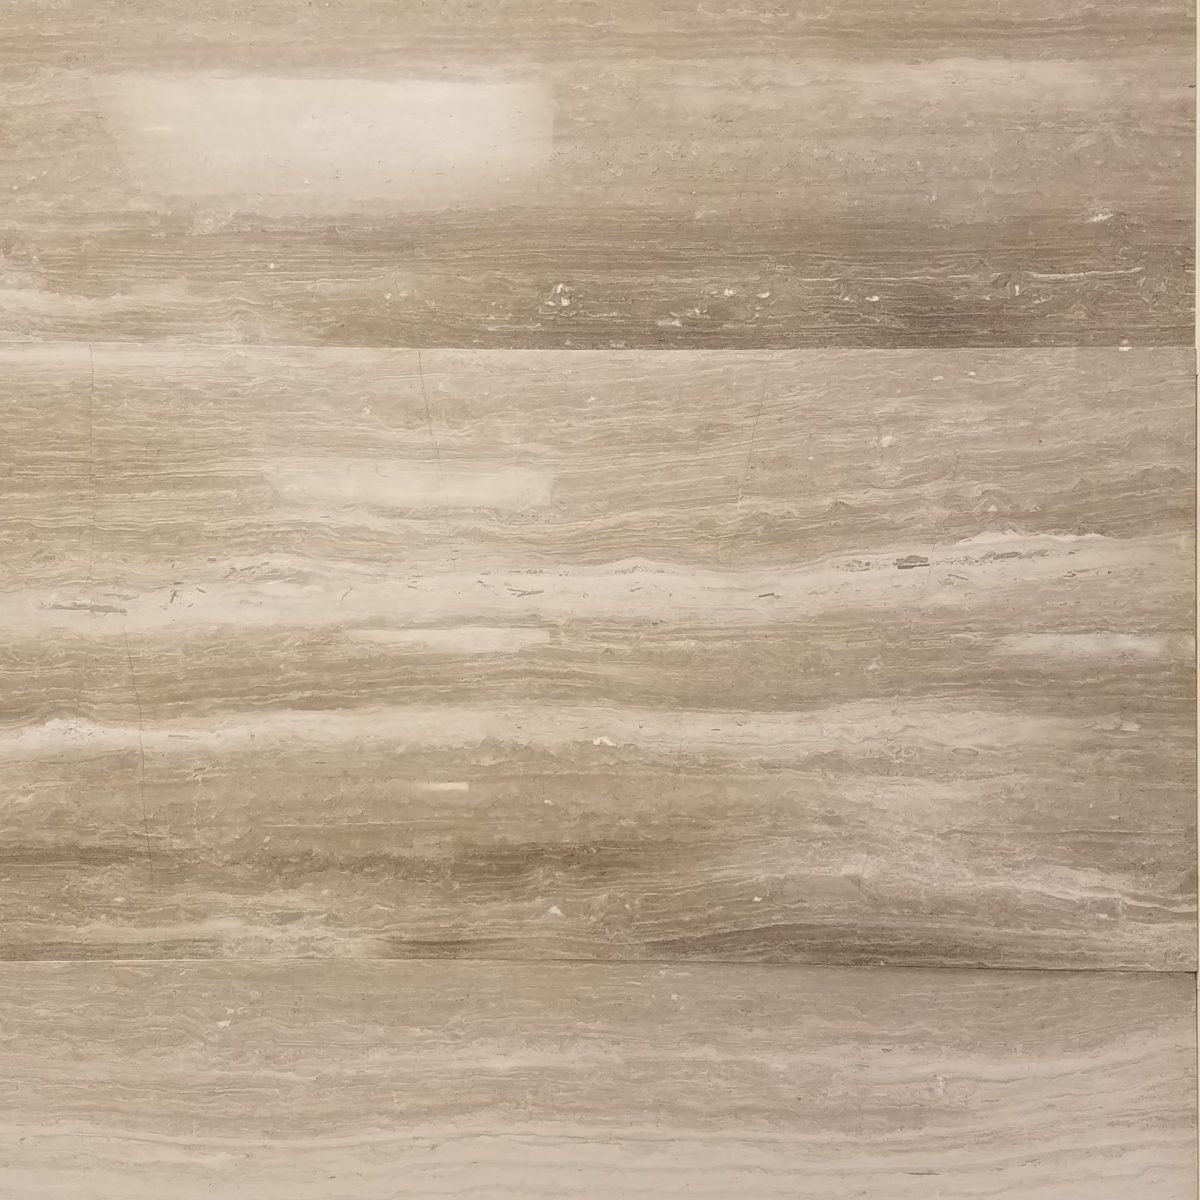 Wooden Gray Polished Marble Tile Travertine And Marble